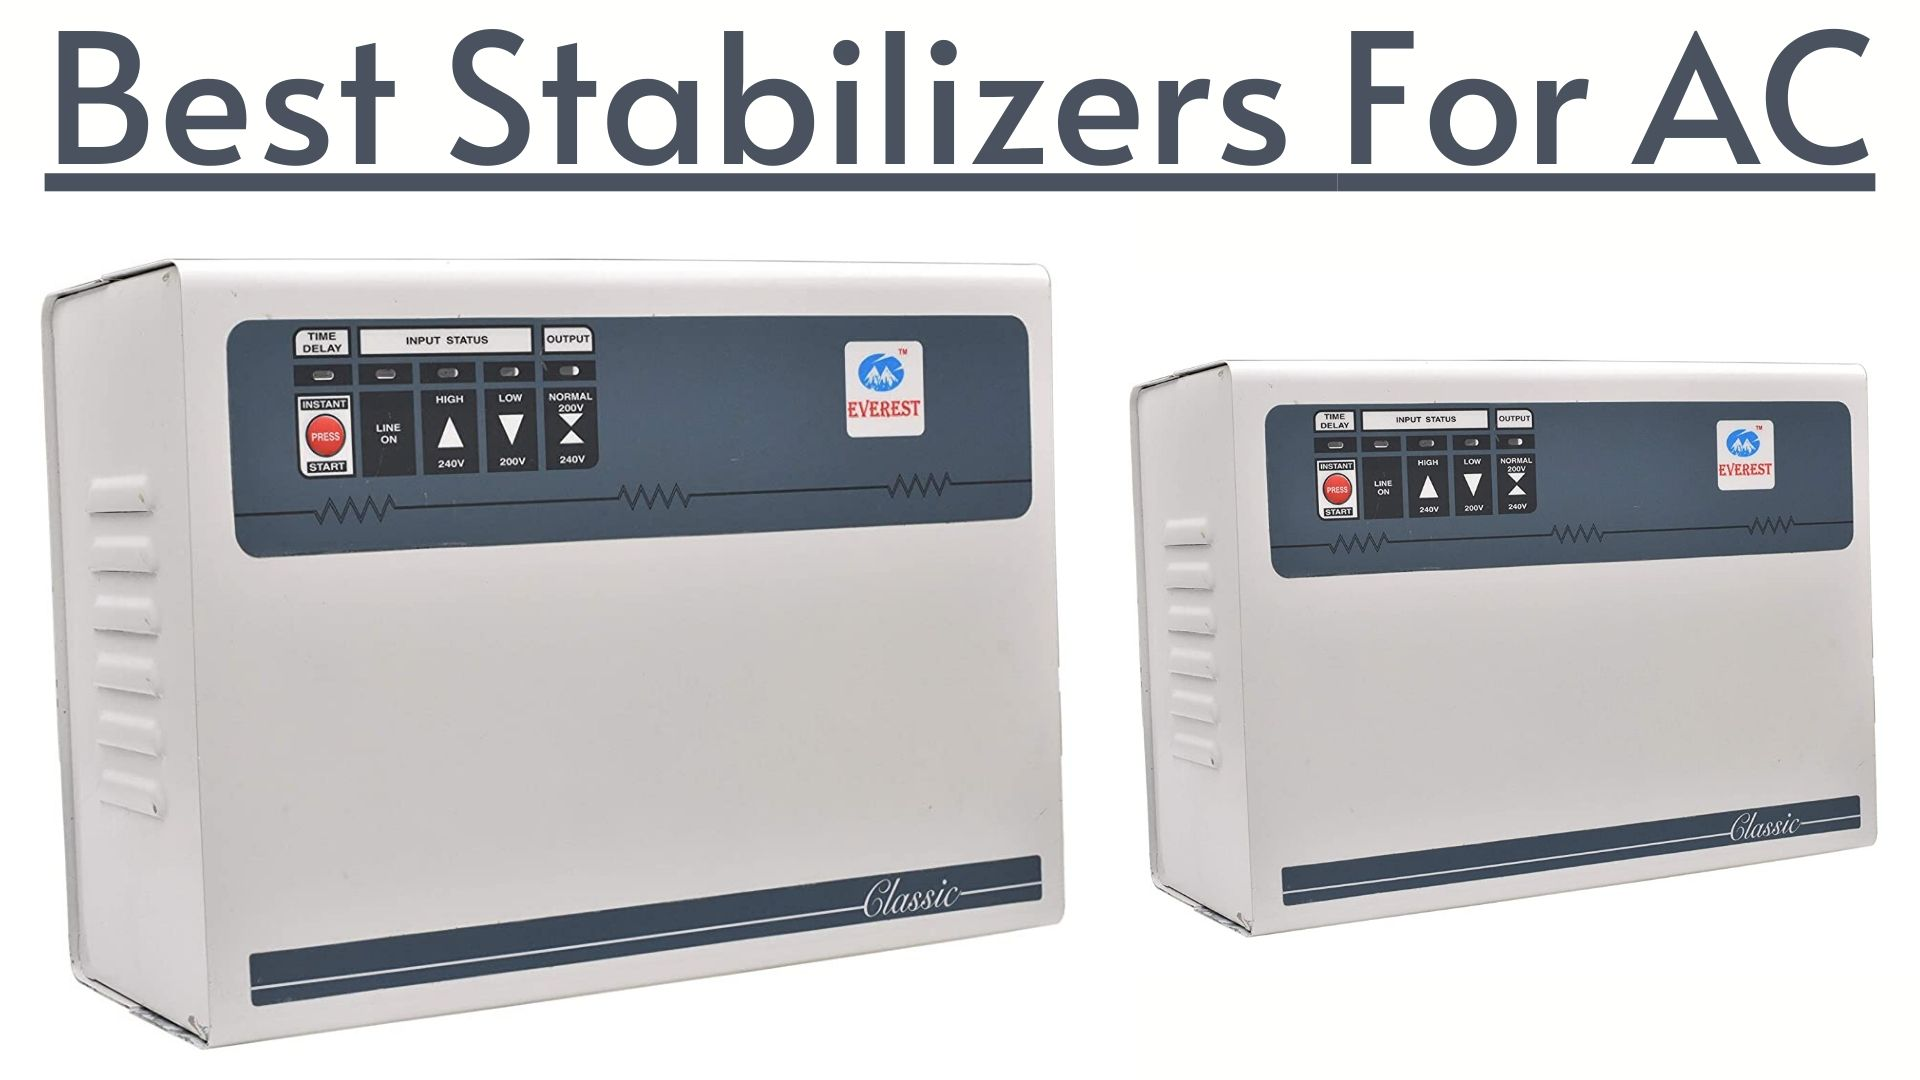 Best Stabilizers For AC